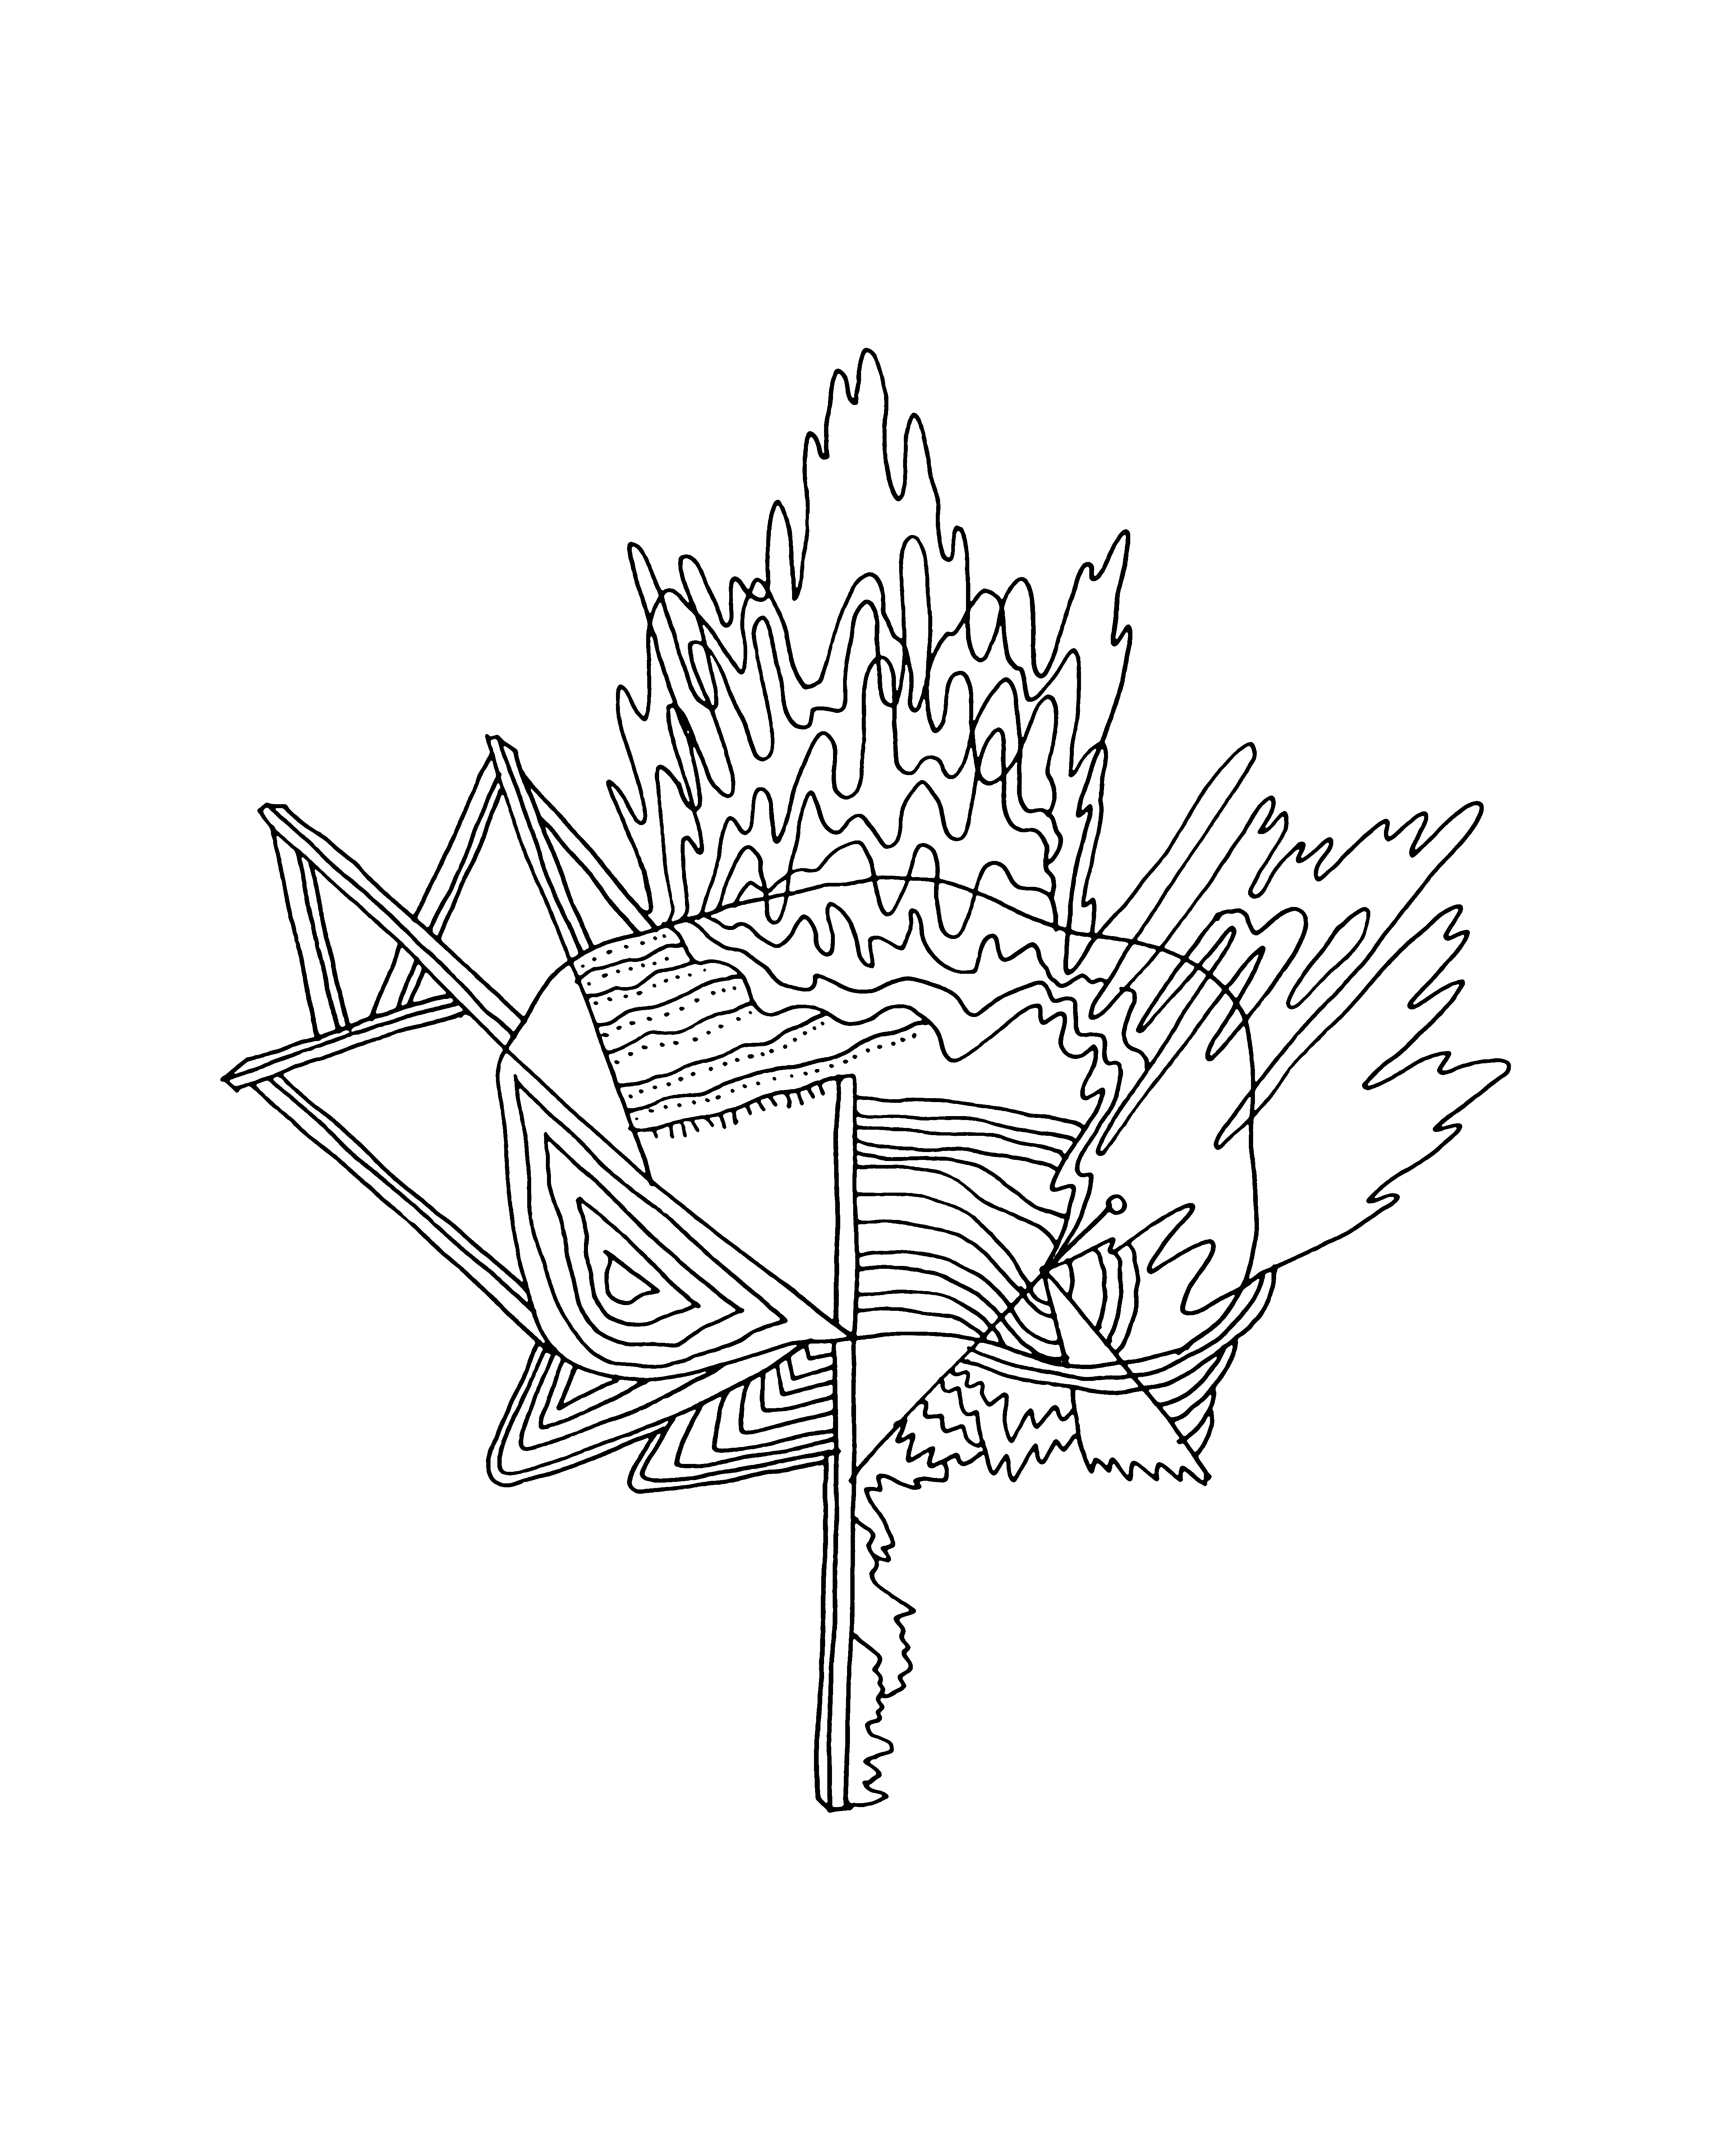 10,000 Pages: Canadian Maple Leaf Colouring Page 5943